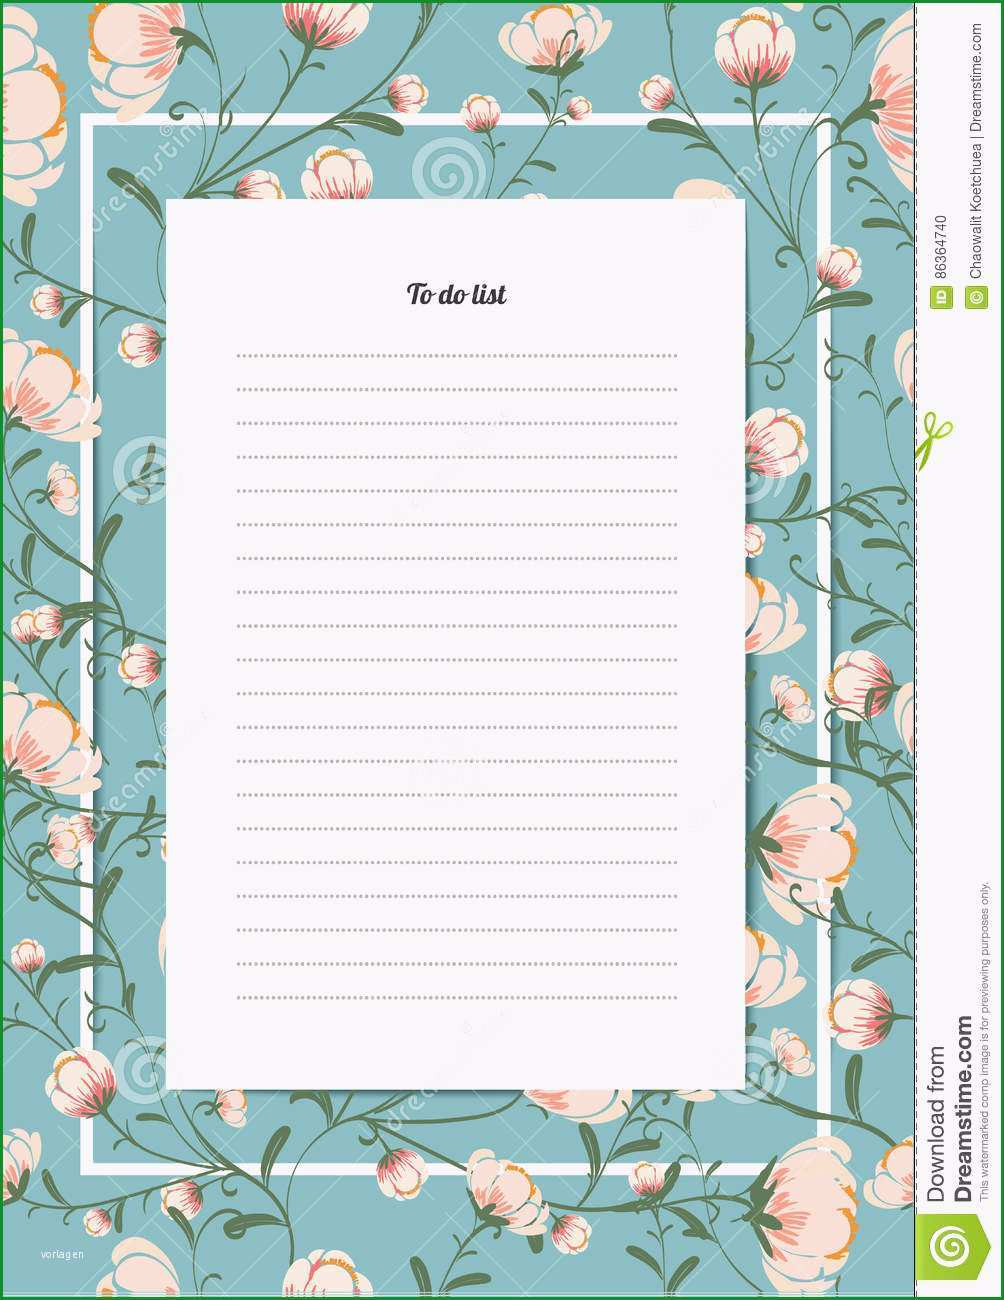 stock illustration flowers poster template blossoms vintage style to do list bouquet image